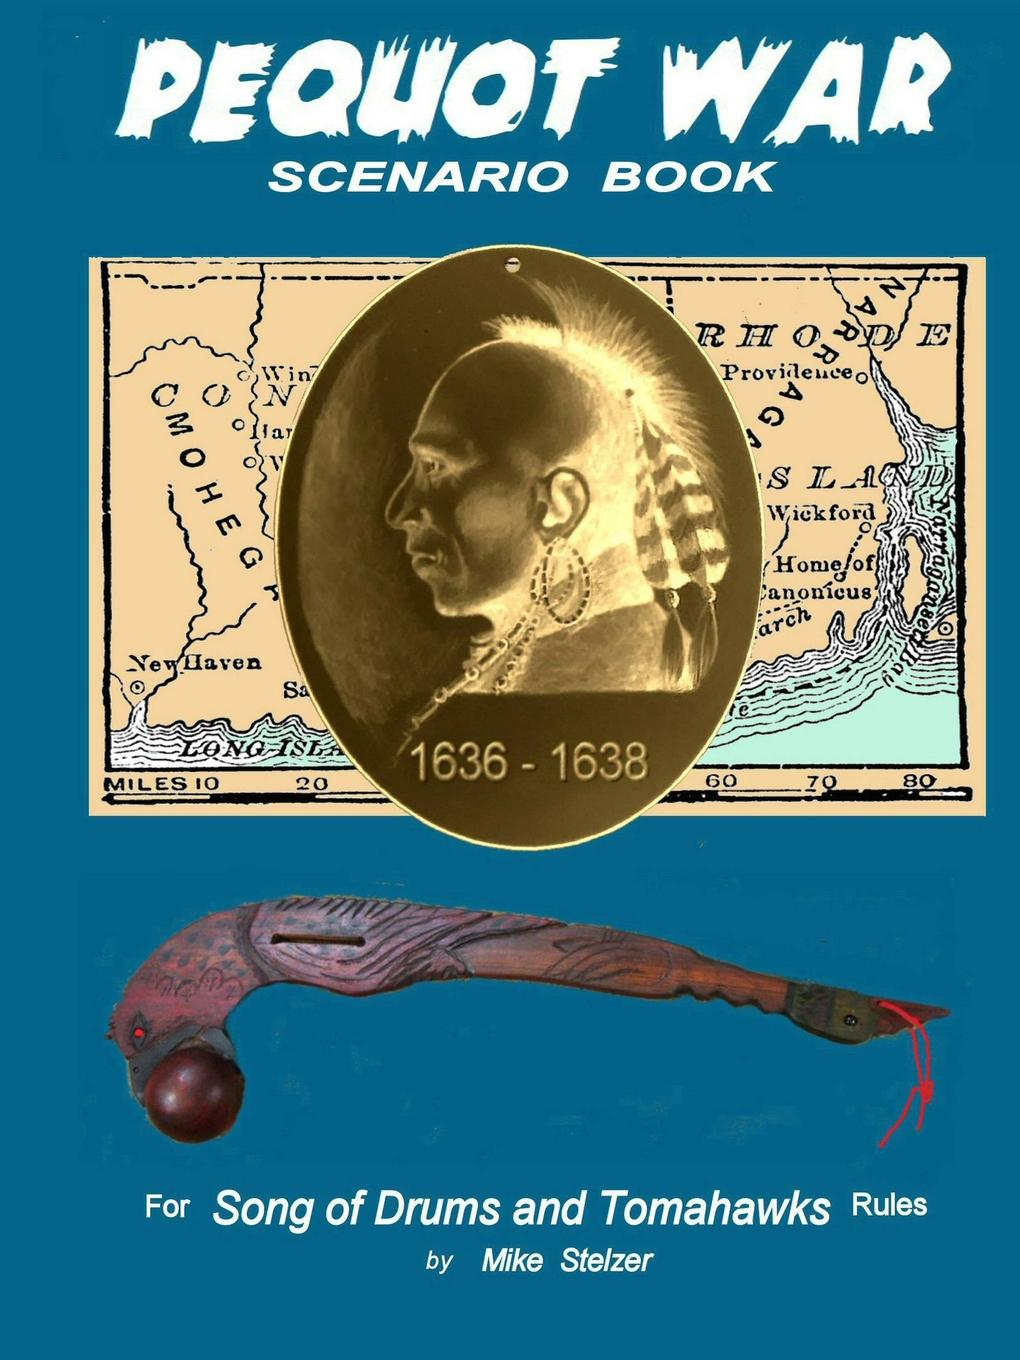 Michael Stelzer Pequot War Scenario Book. Wargame scenarios retelling the story of the Pequot War in New England, July 1636 to September 1638 new rules for the new economy